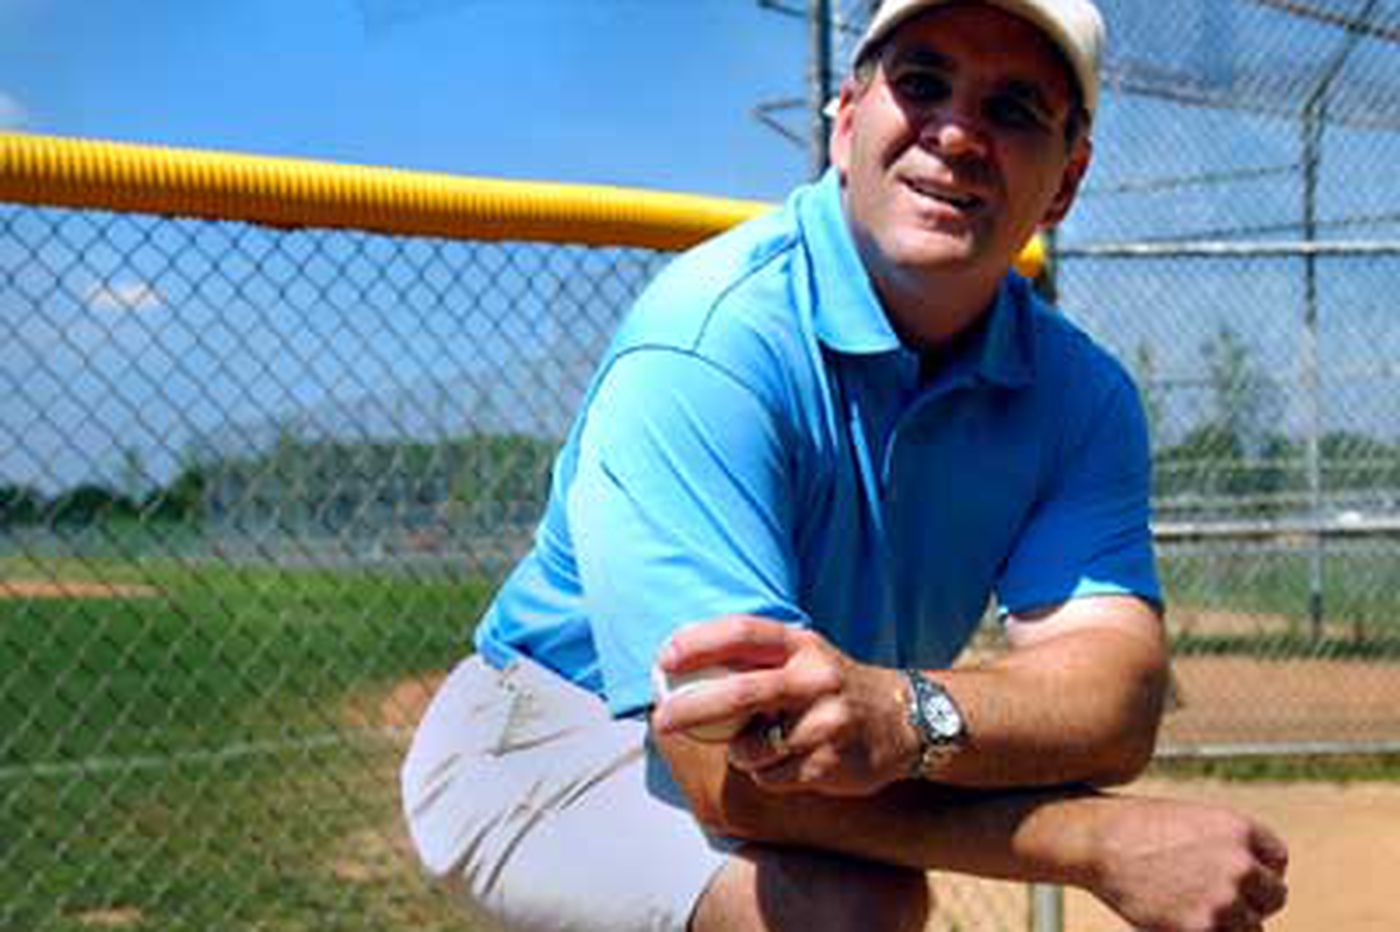 Former Northeast catcher, baseball scout looking for another chance after false charges